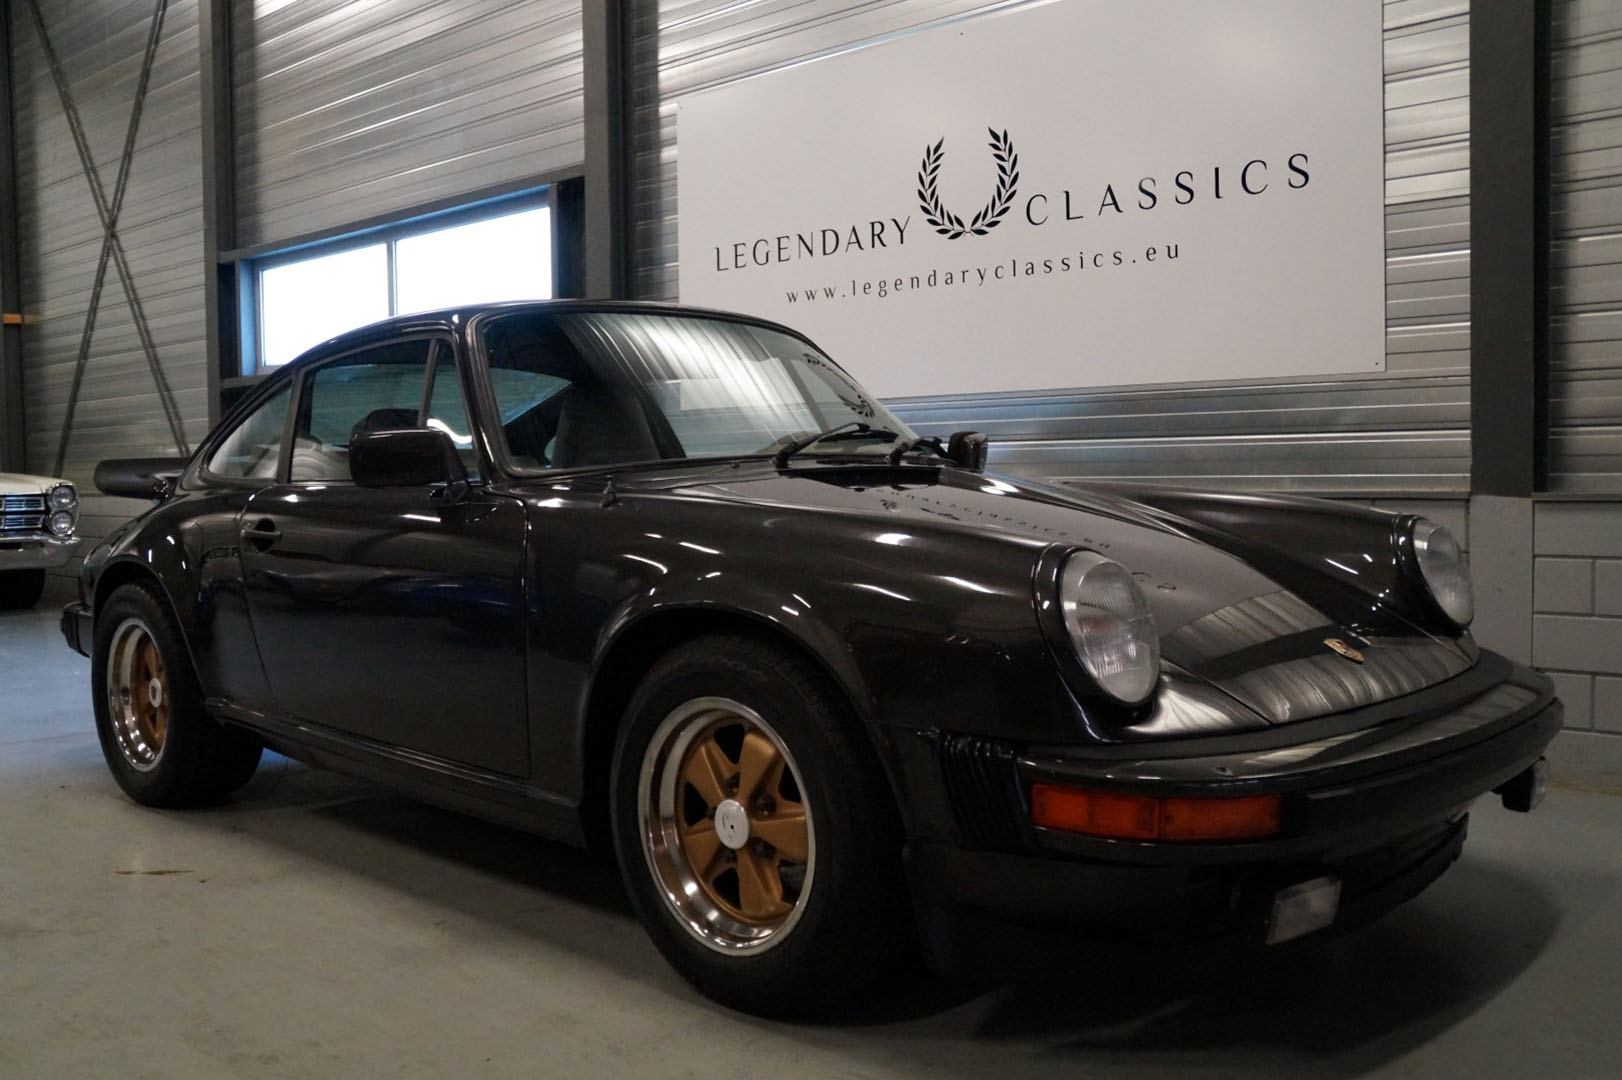 Buy this Porsche 911 Weissach Edition   at Legendary Classics